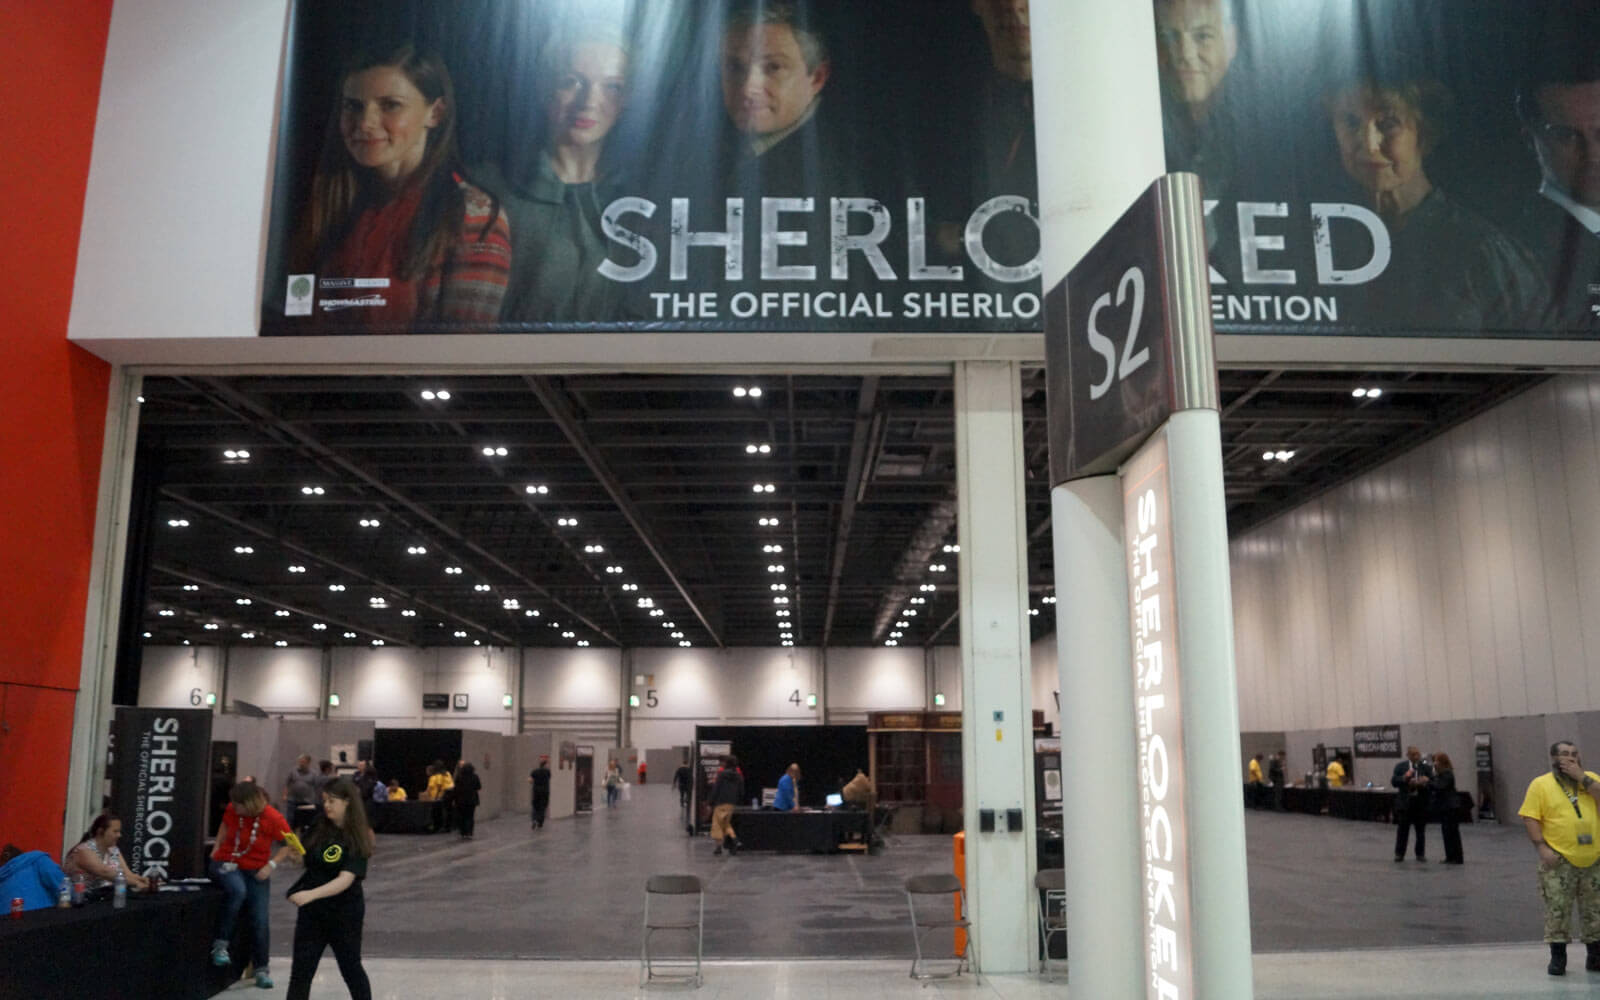 Eingang des Sherlocked-Events in London